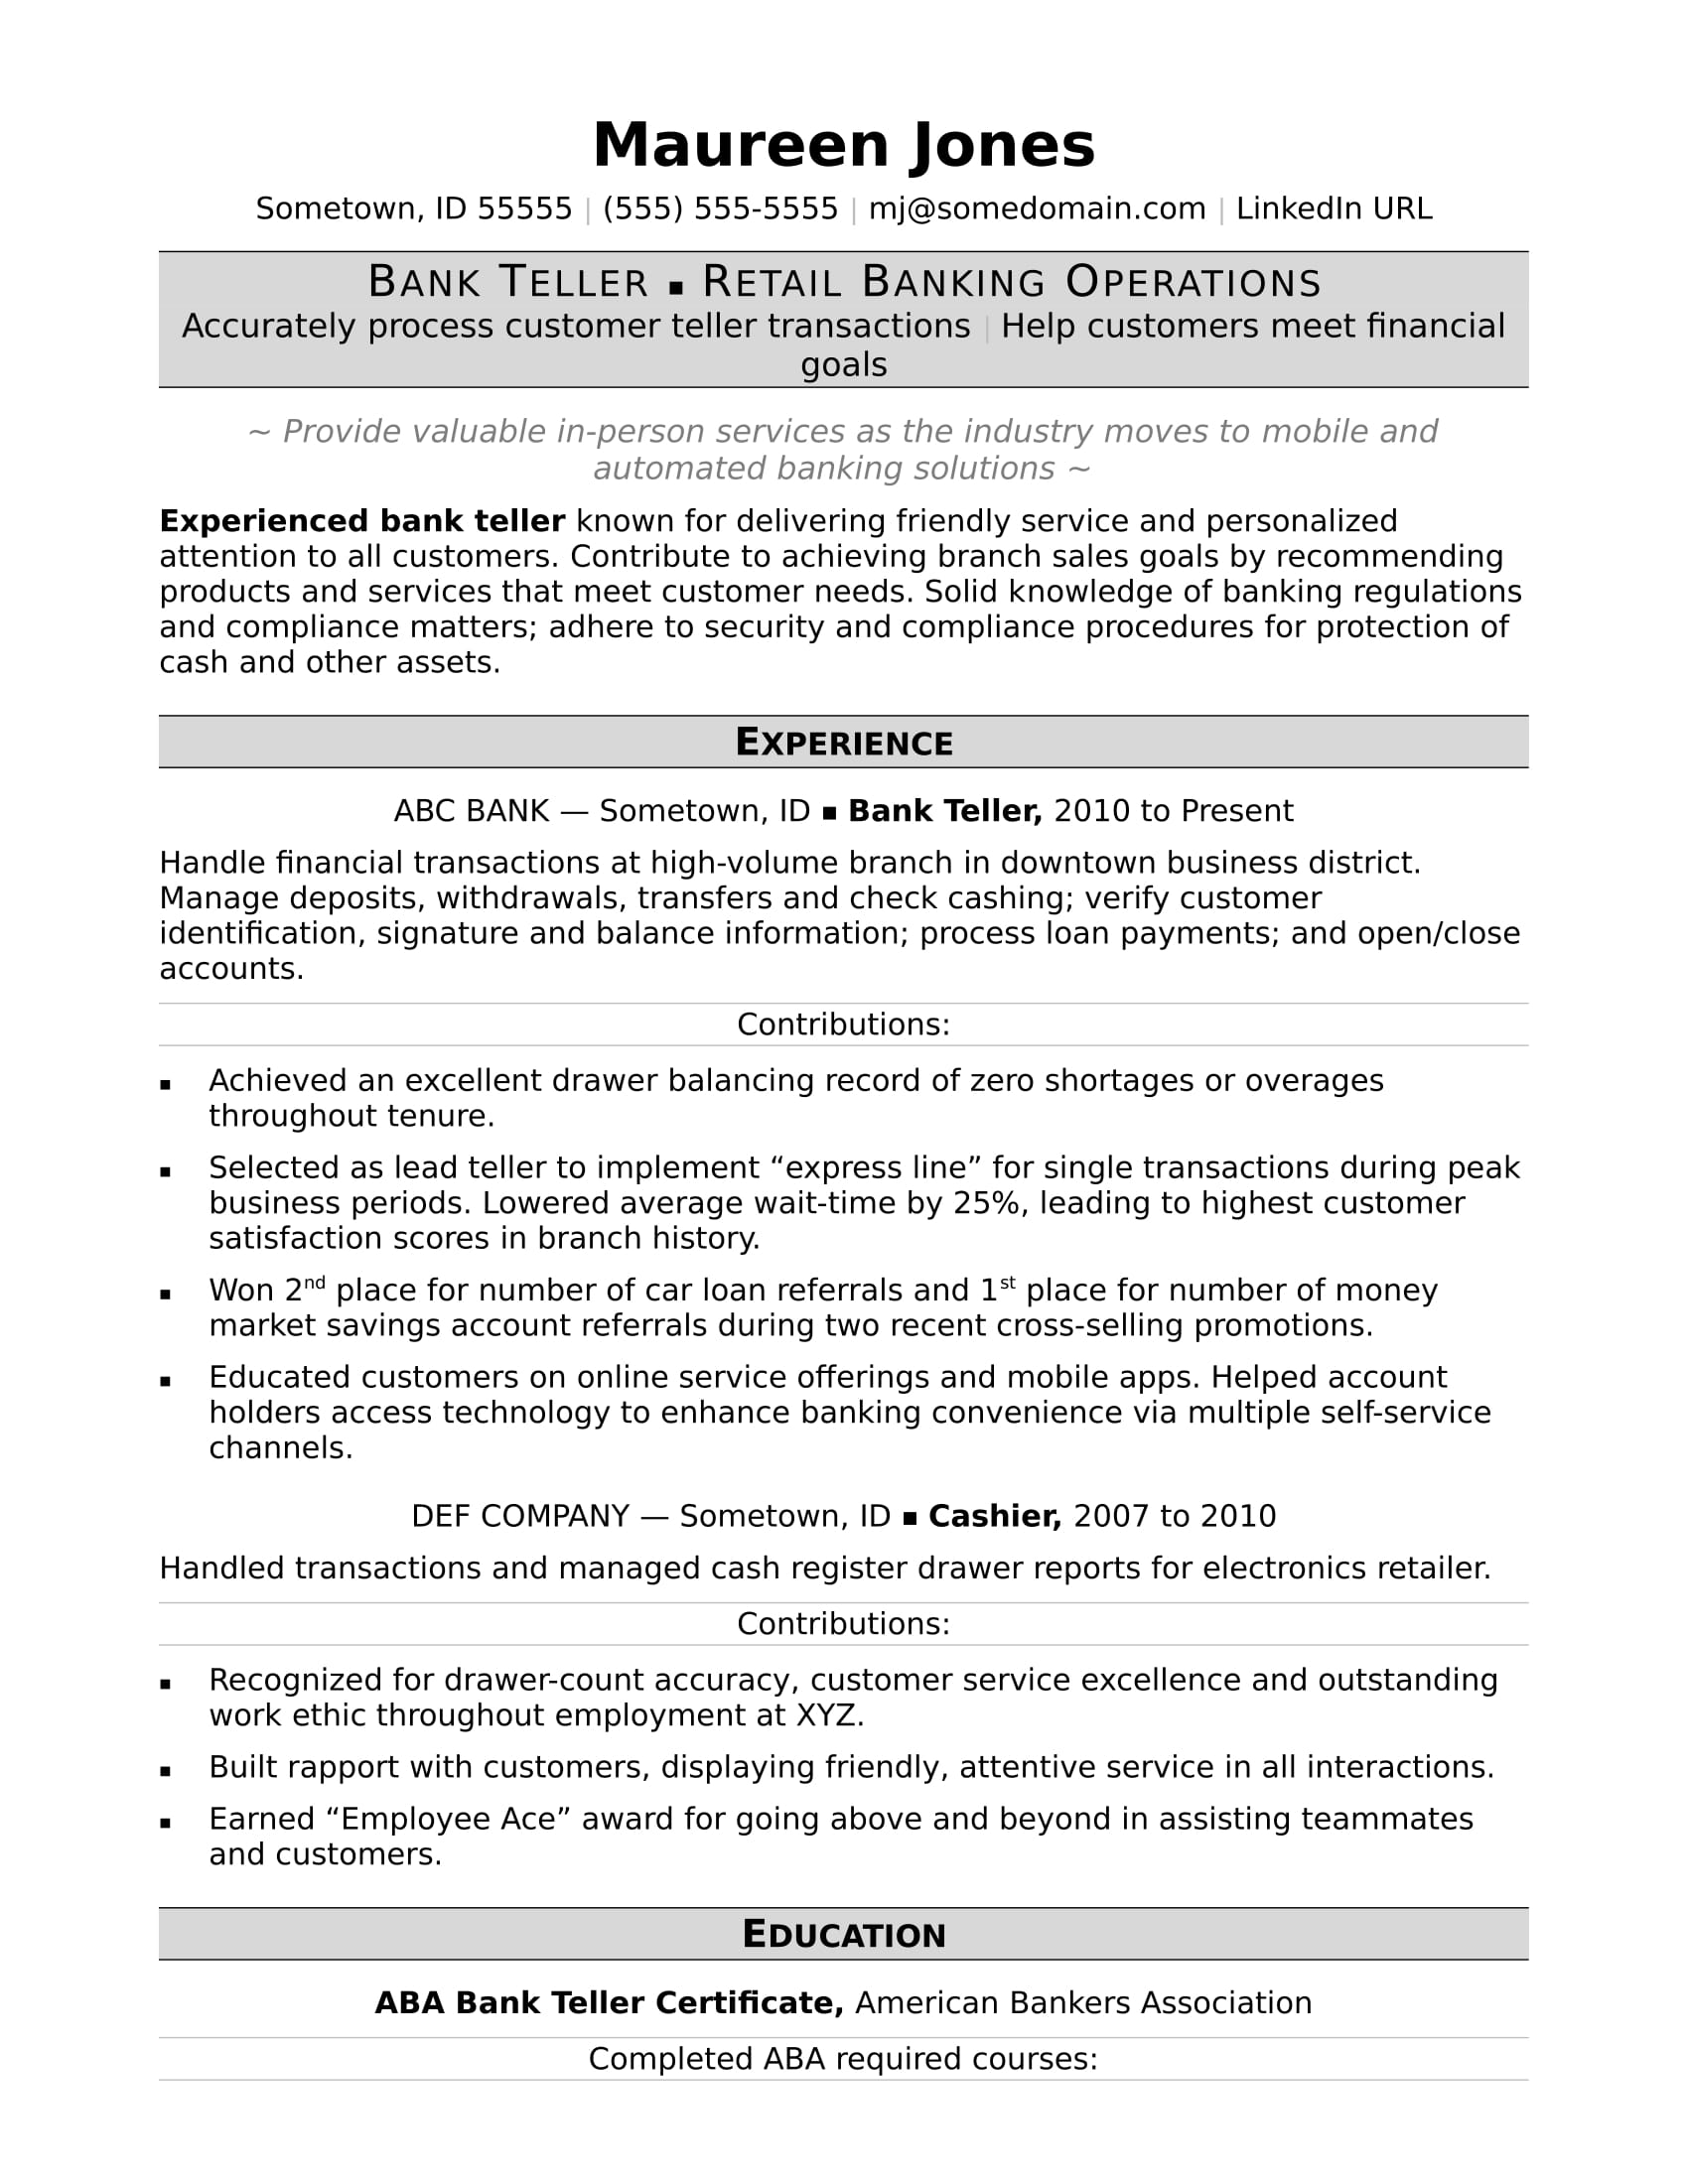 Bank teller resume sample monster bank teller resume sample yelopaper